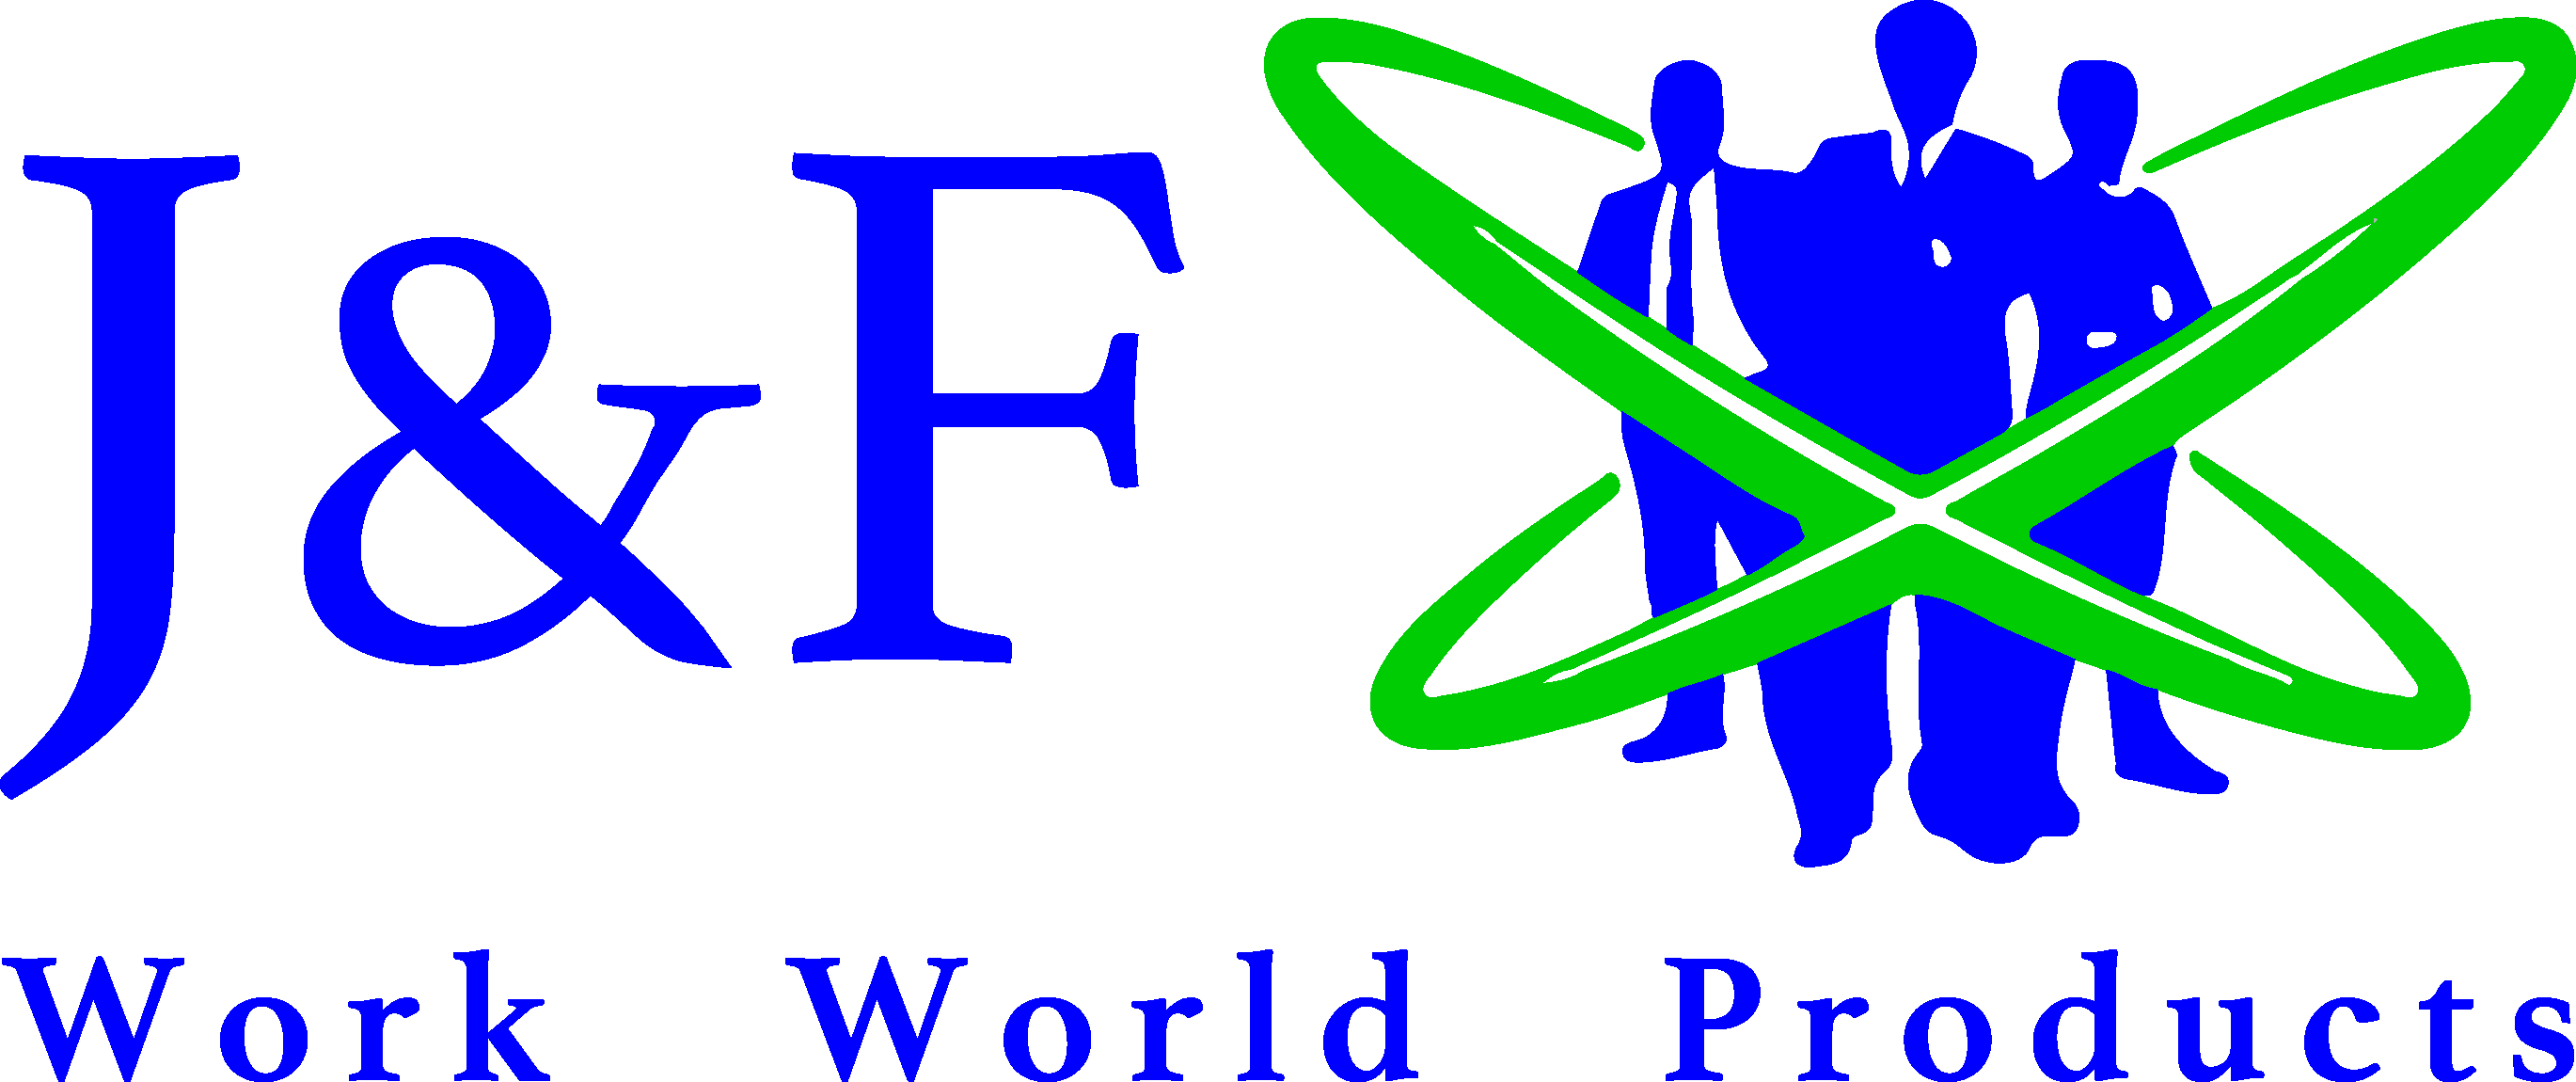 J&F – Work World Products